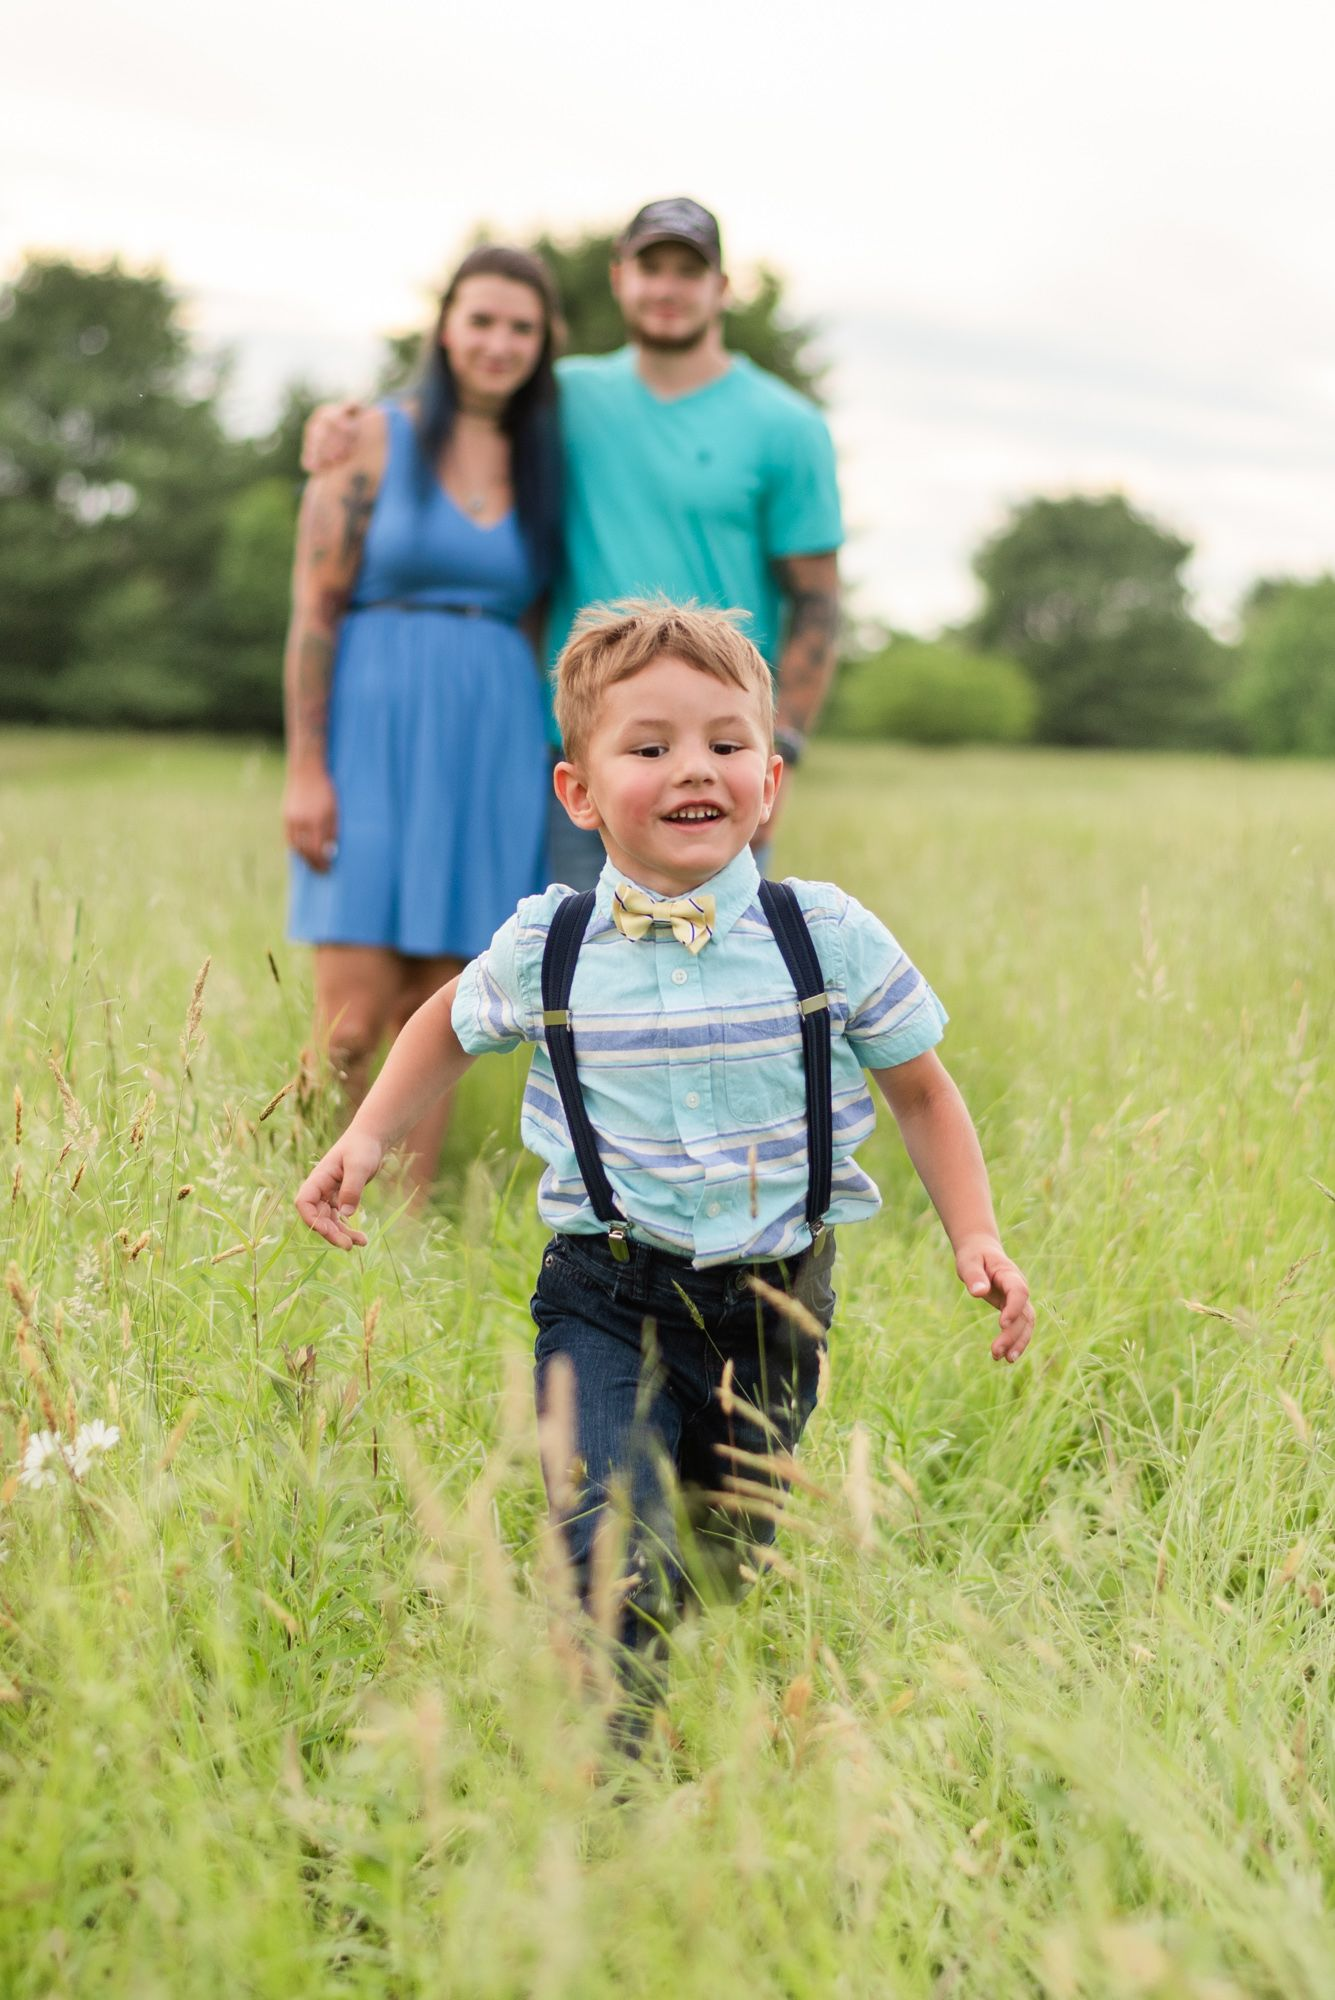 Little boy running through field and parents standing in background in Clarion Pennsylvania